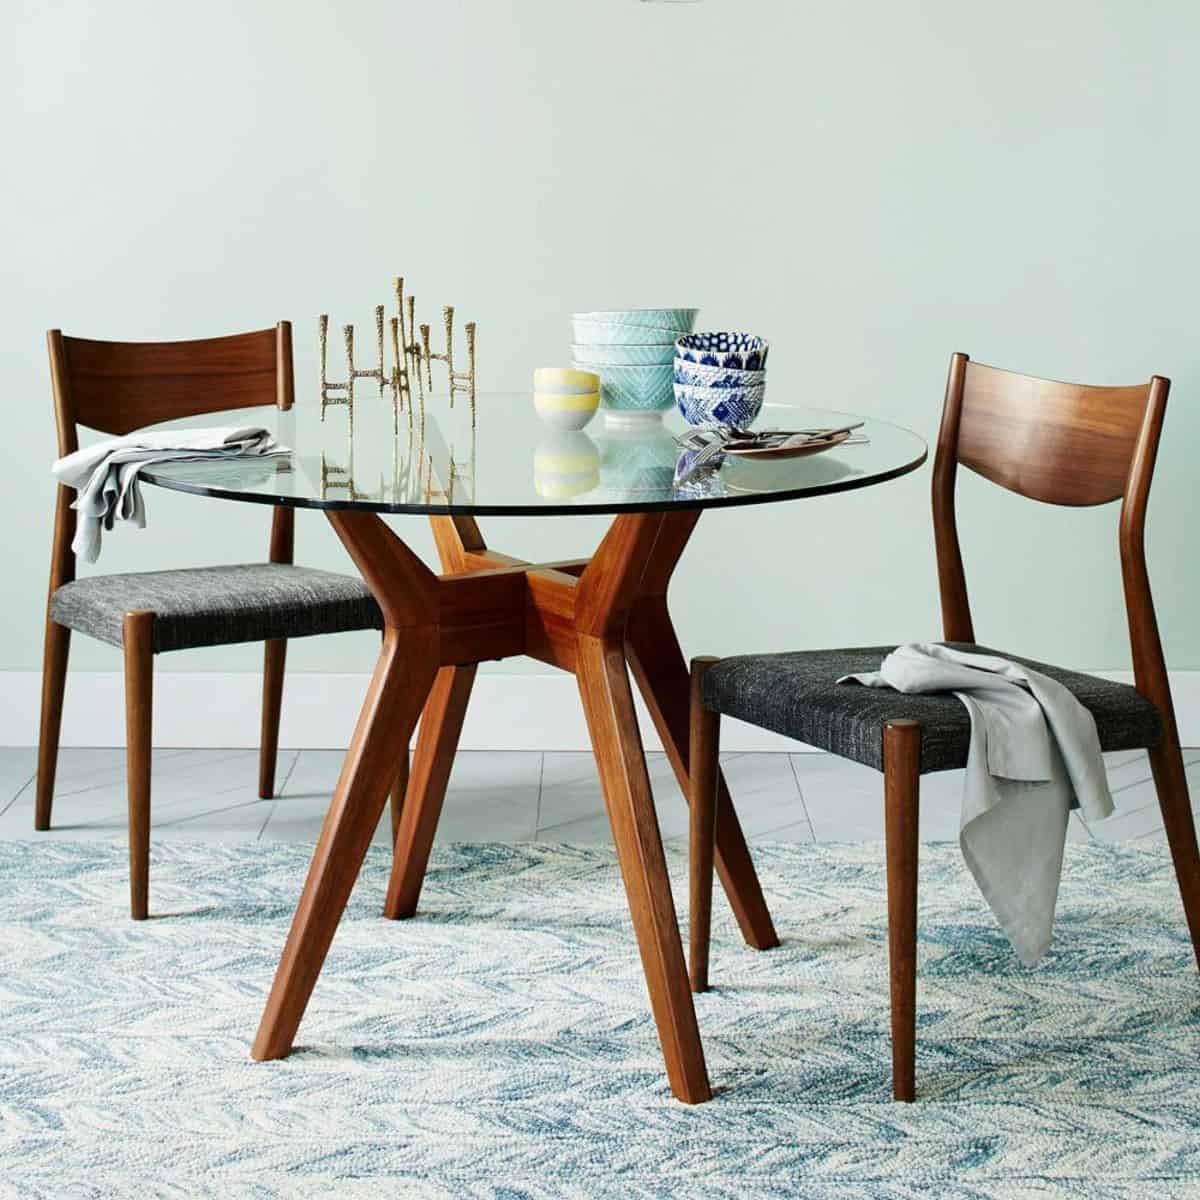 Circular Dining Room: 15 Round Glass Dining Room Tables That Add Sophistication